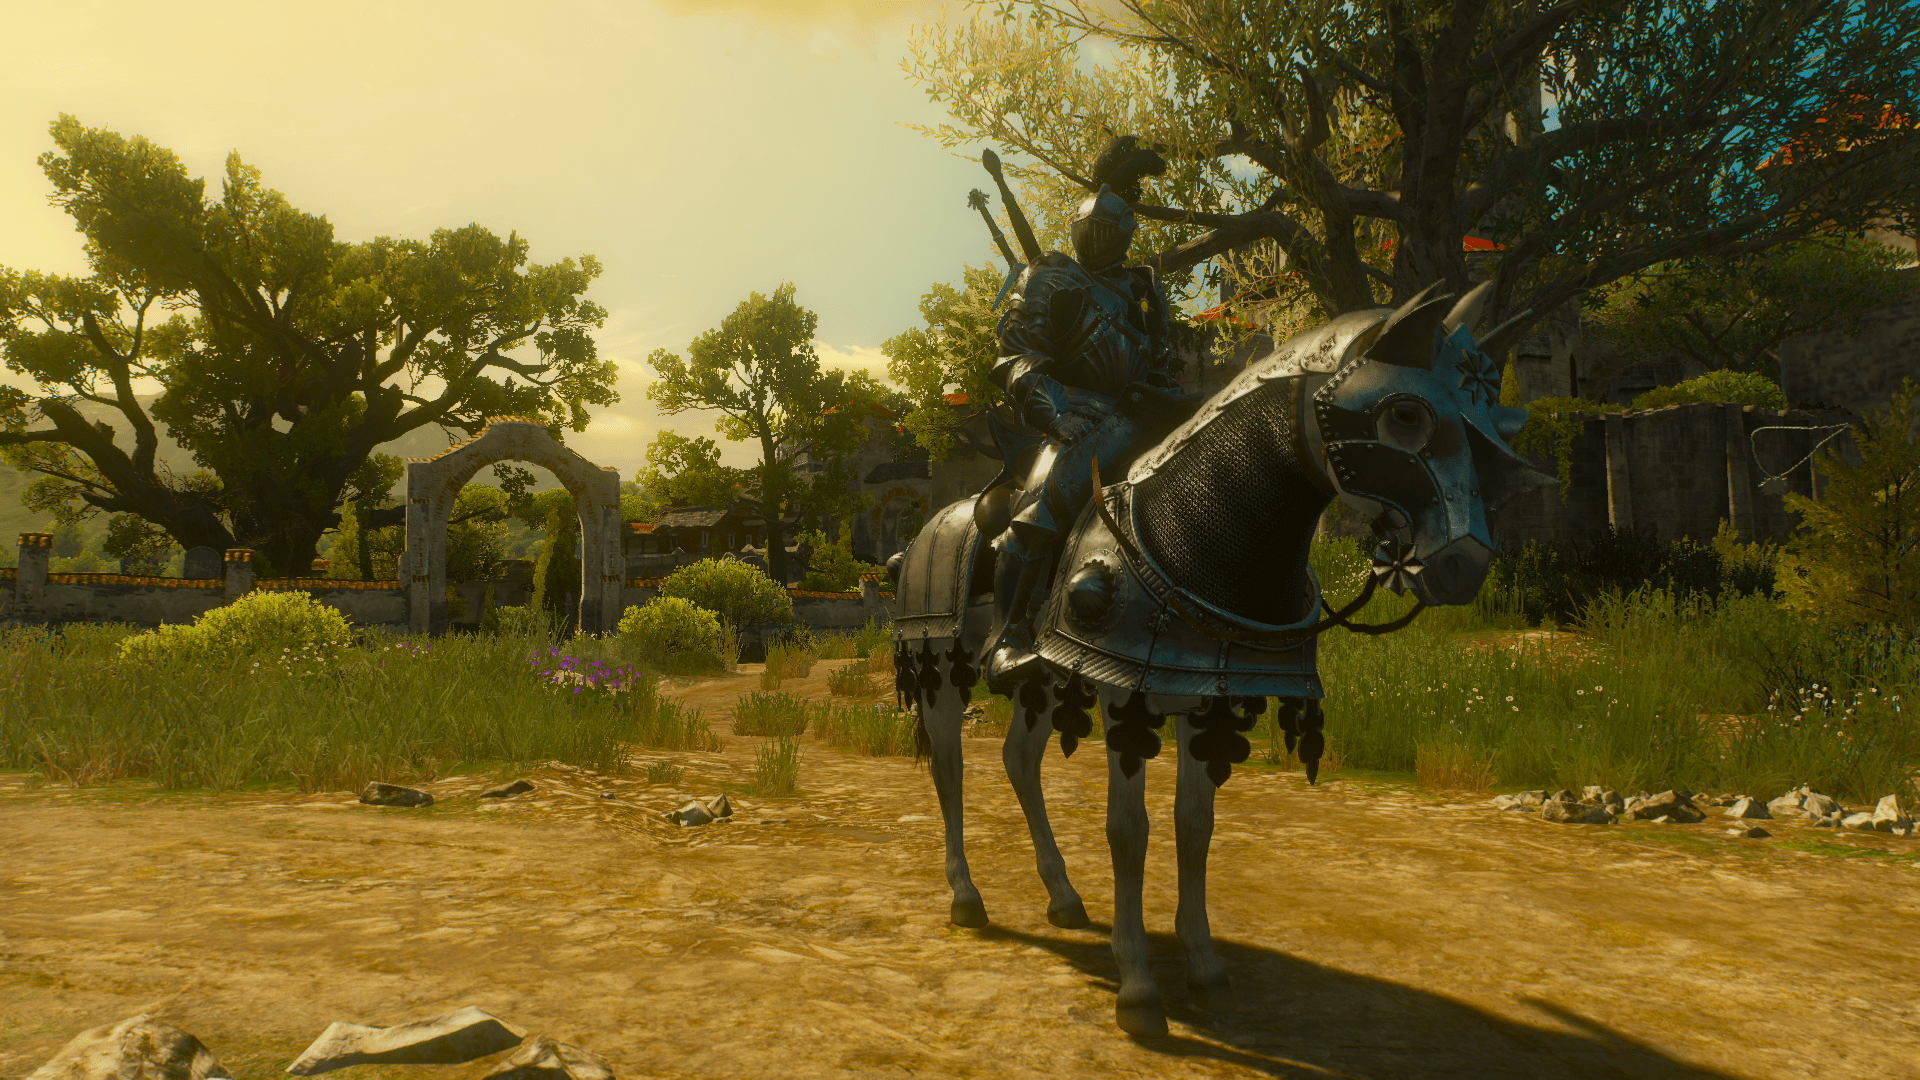 Knights Of Argent Dawn 3 At The Witcher 3 Nexus